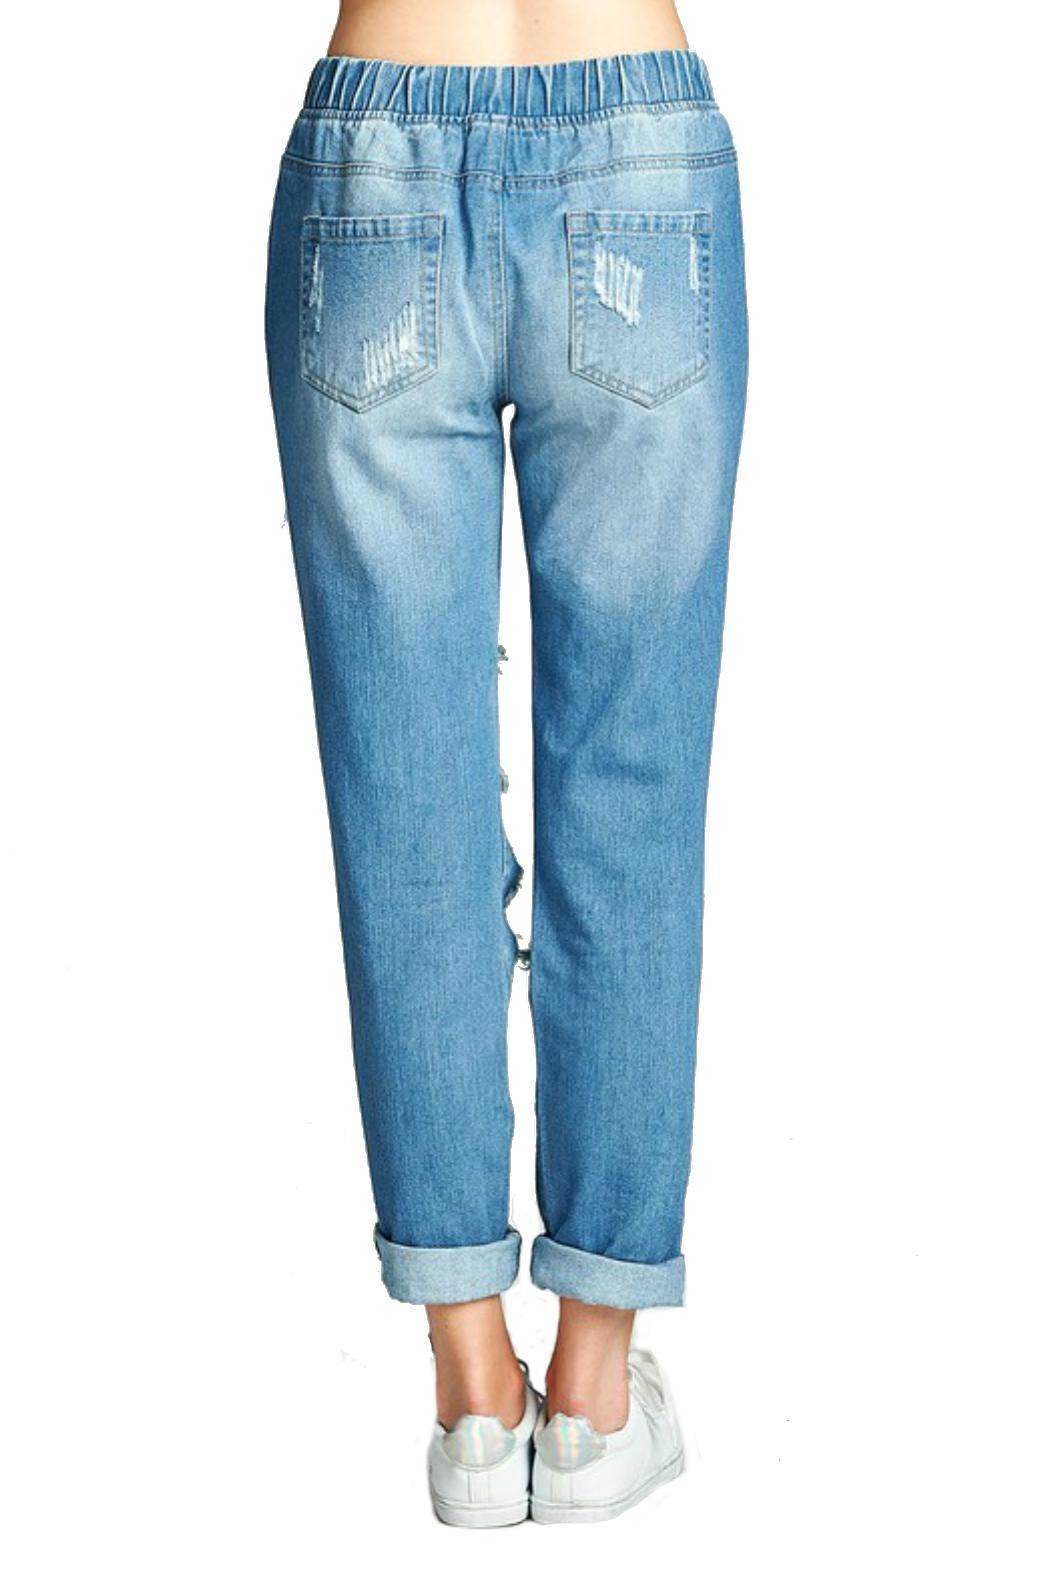 Minx Distressed Denim Joggers - Back Cropped Image